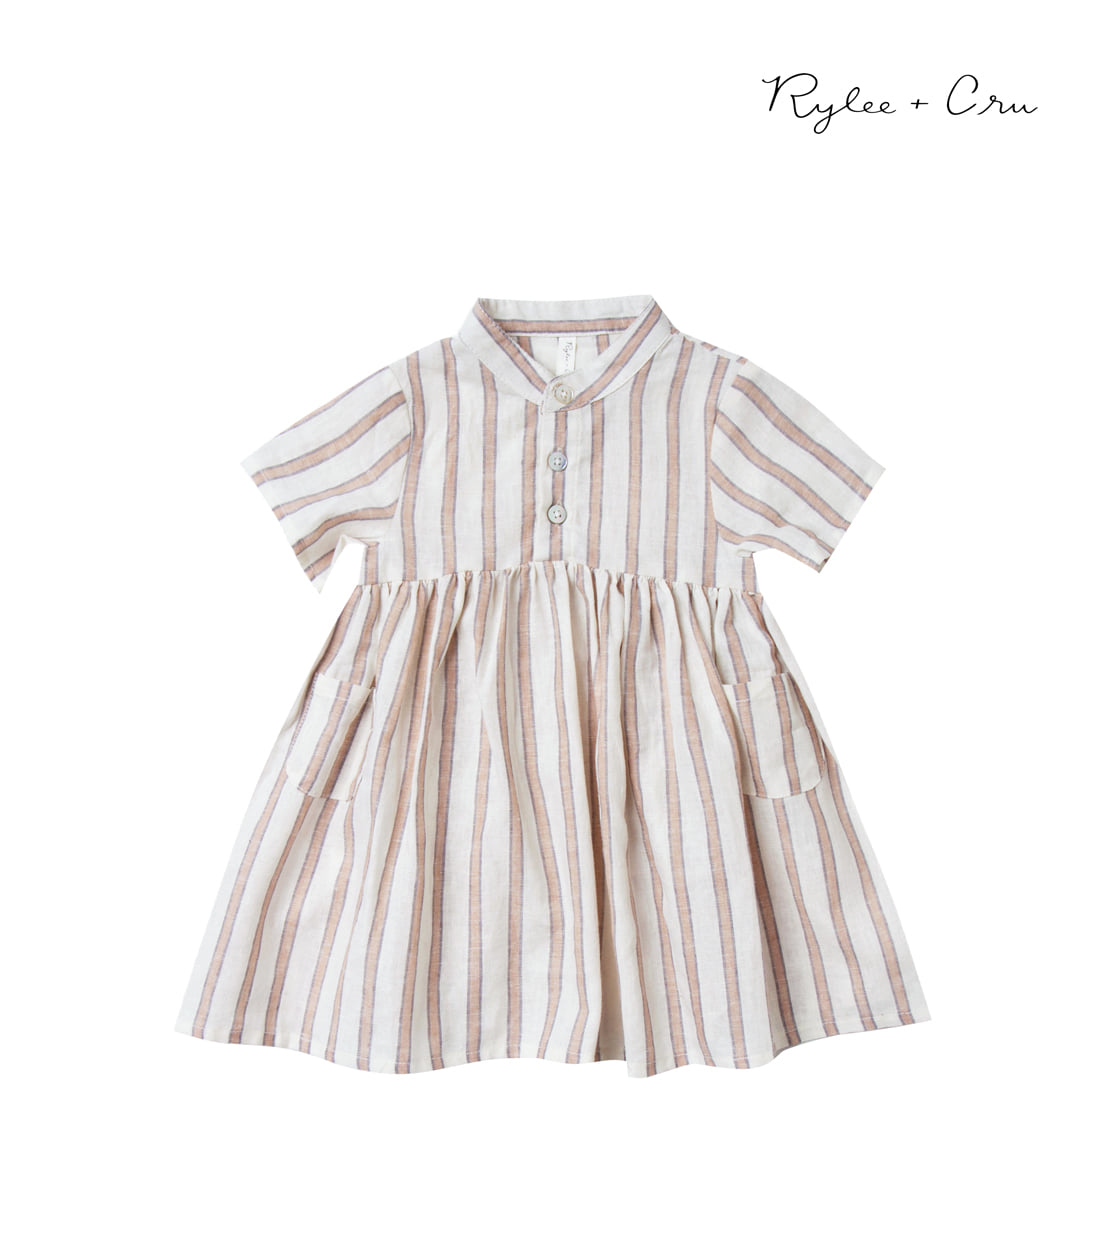 라일리앤크루 STRIPE ESME DRESS / TRUFFLE